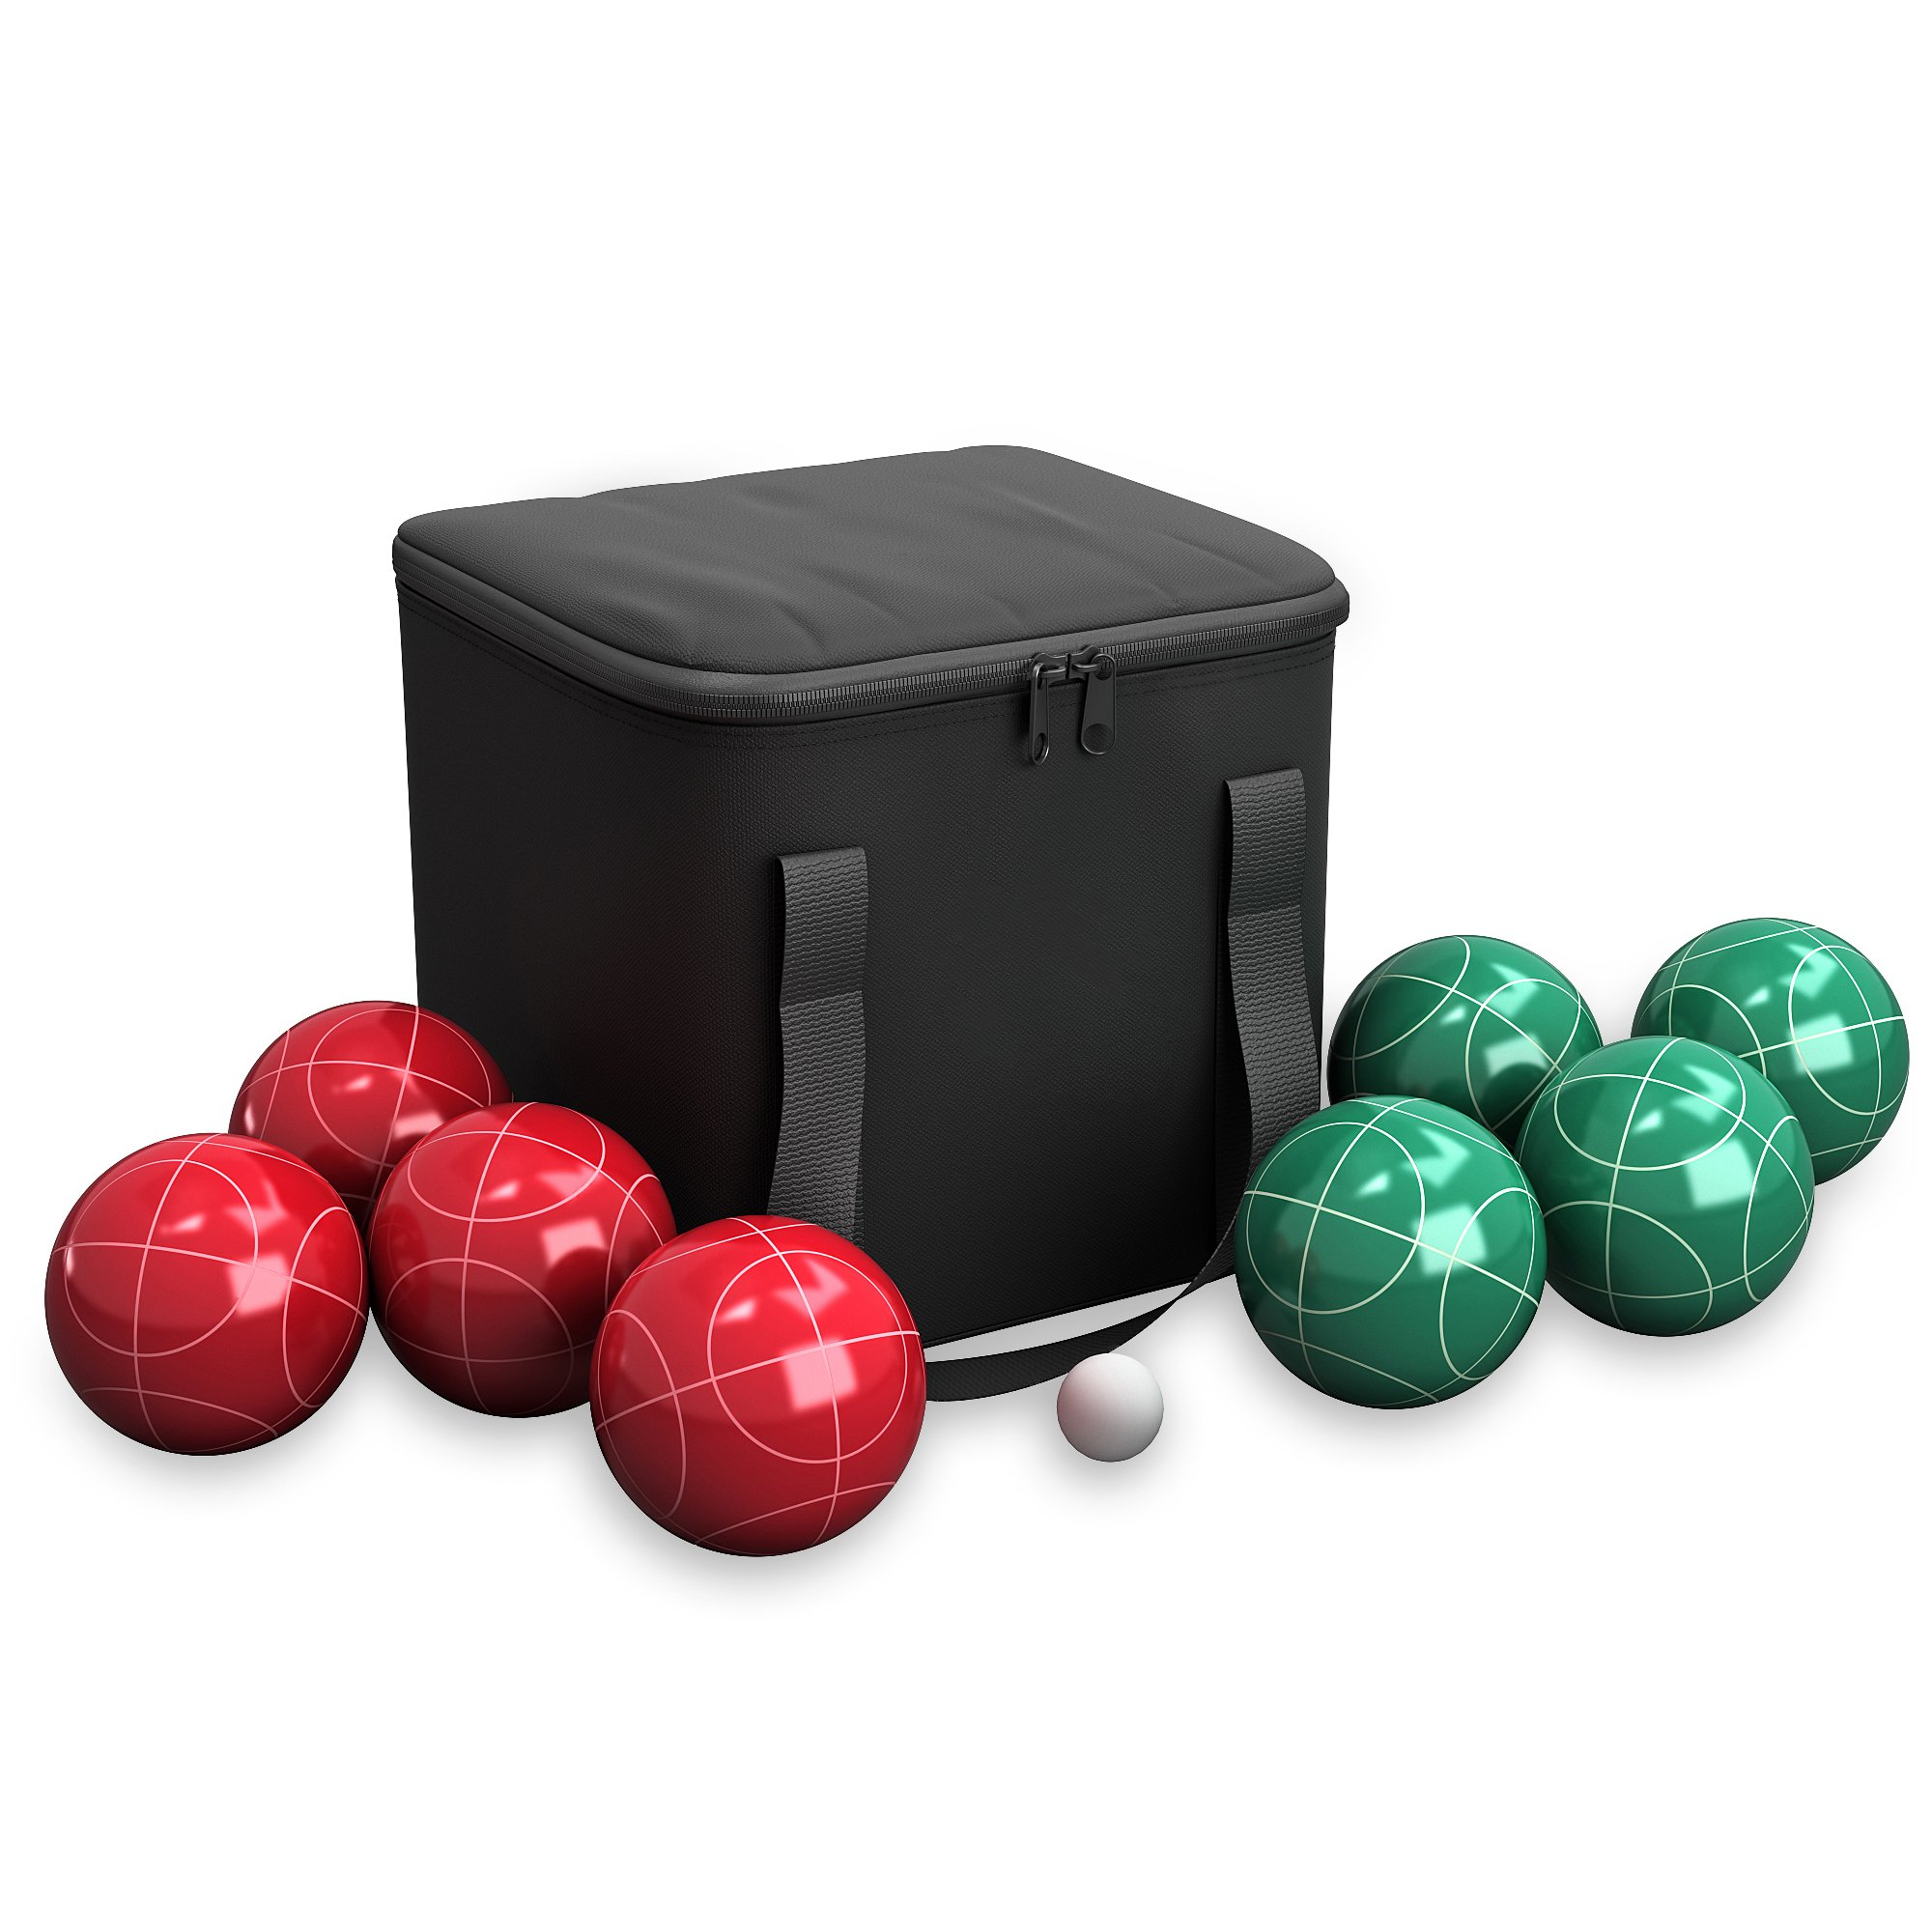 Hey! Play!! 80-76090 Bocce Ball Set- Outdoor Family Bocce Game for Backyard, Lawn, Beach & More- 4 Red & 4 Green Balls, Pallino & Carrying Case by Hey! Play!